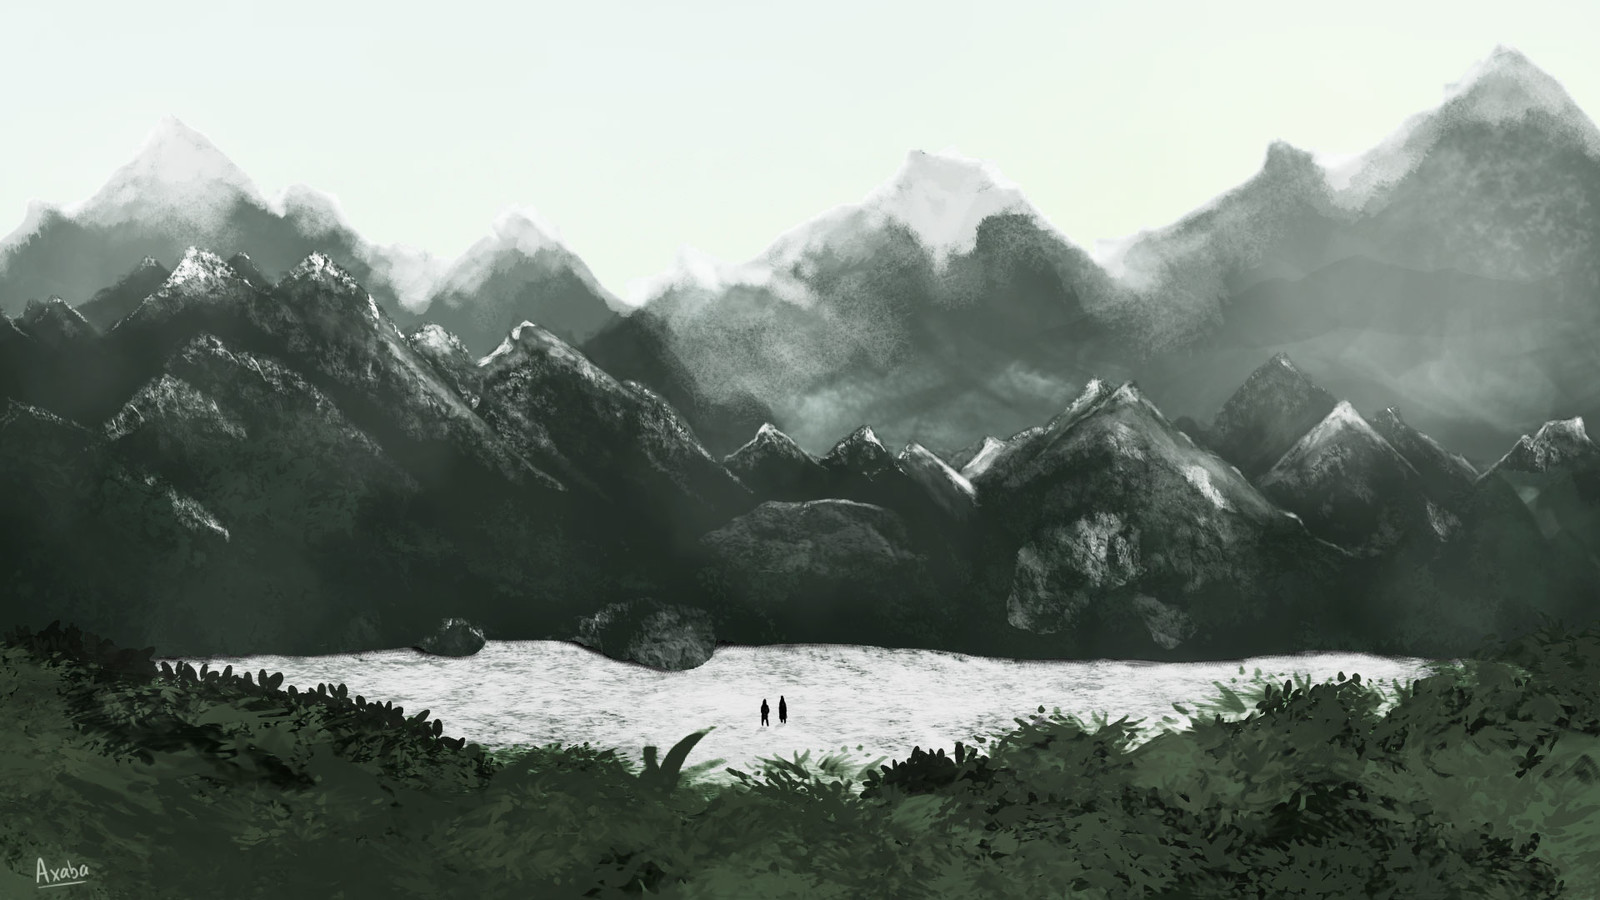 Moutain in digital painting